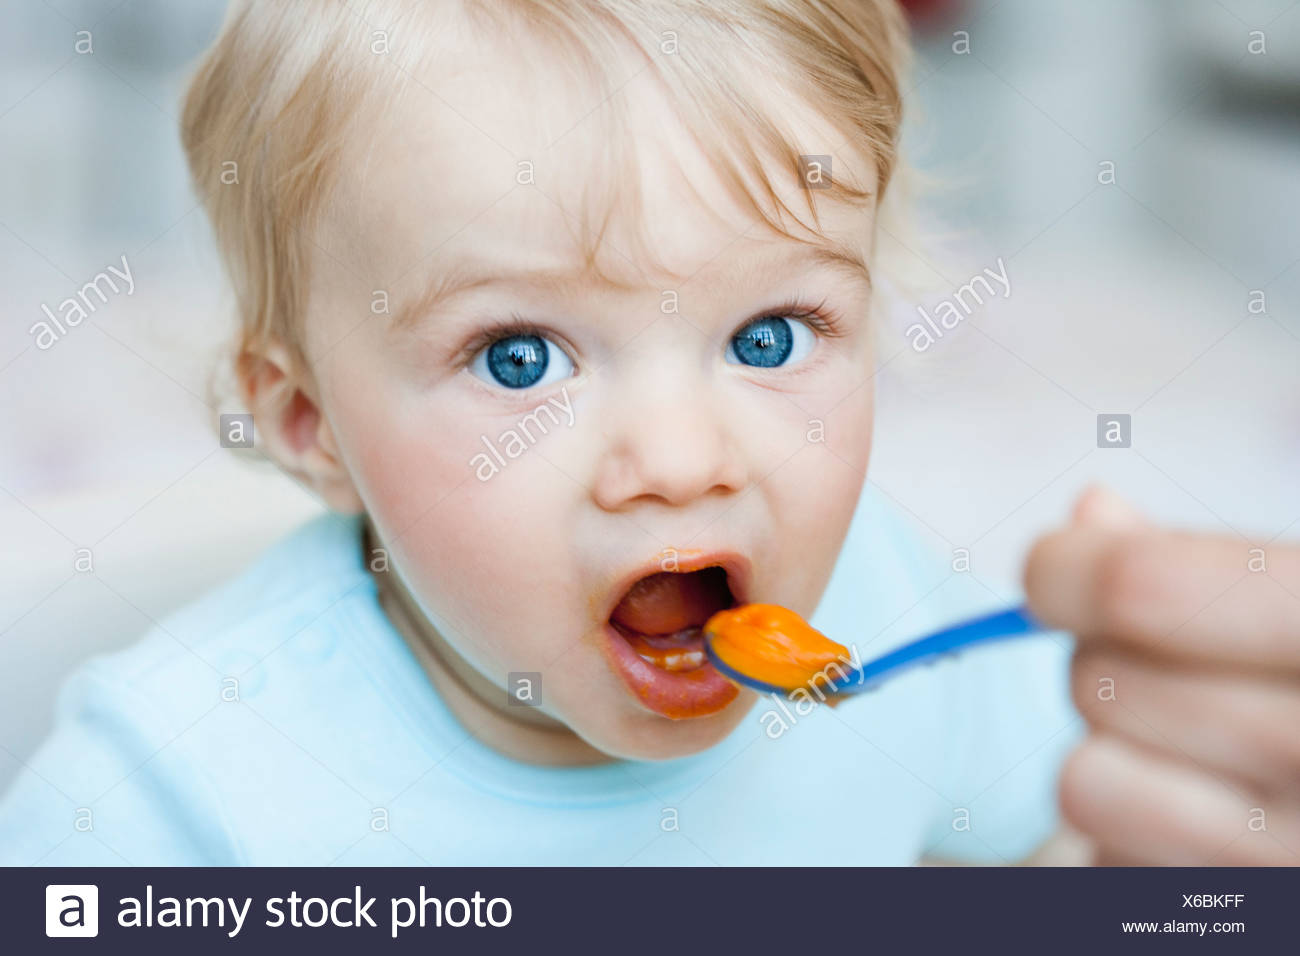 baby being fed looking at viewer - Stock Image